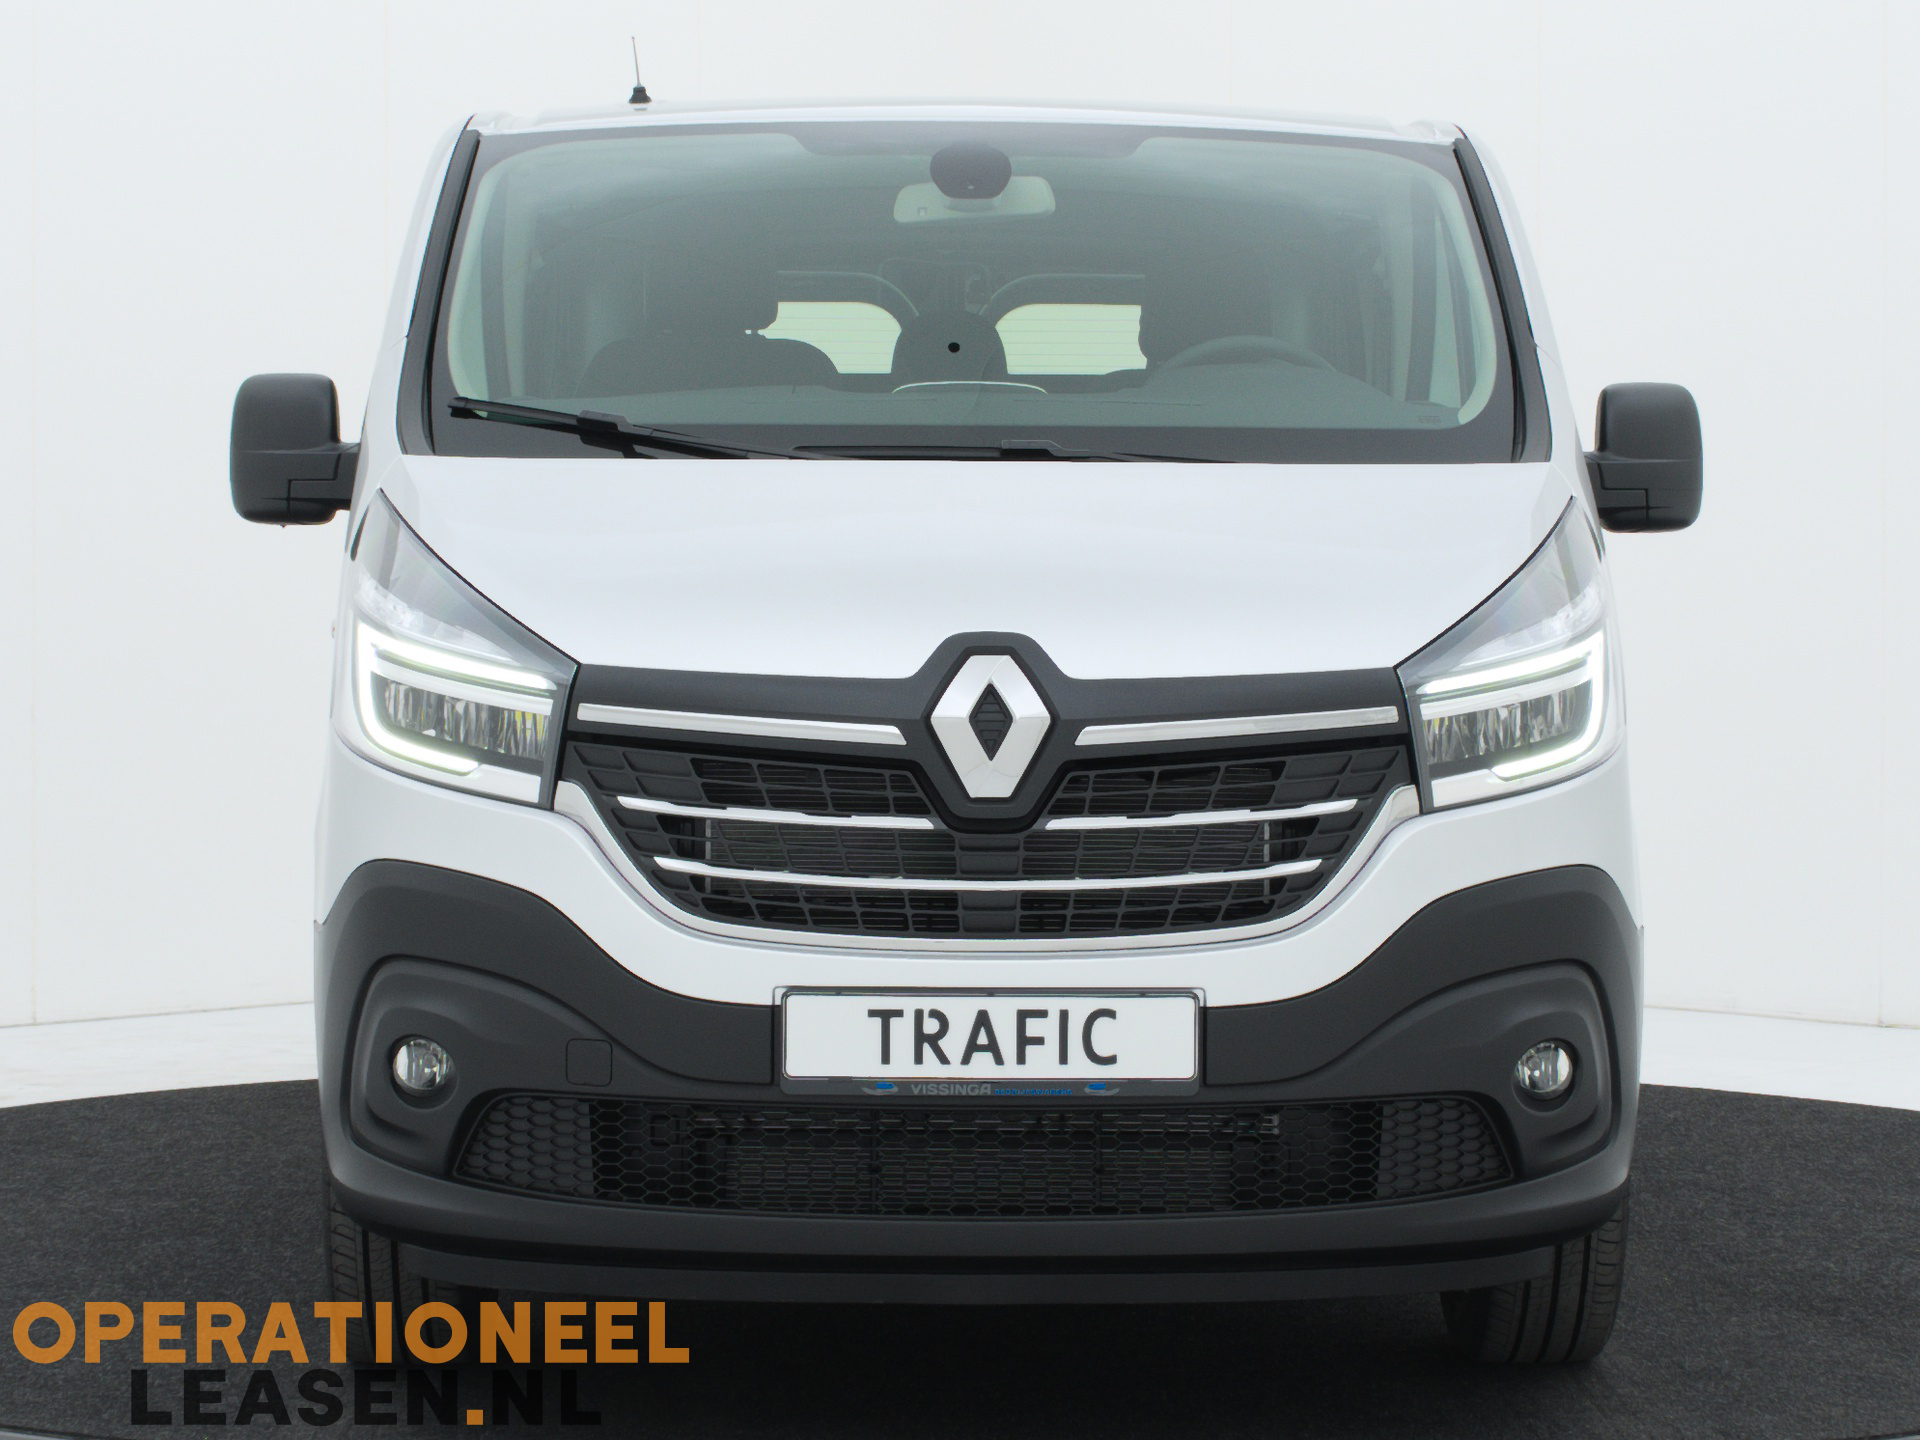 Operational lease Renault master traffic-10